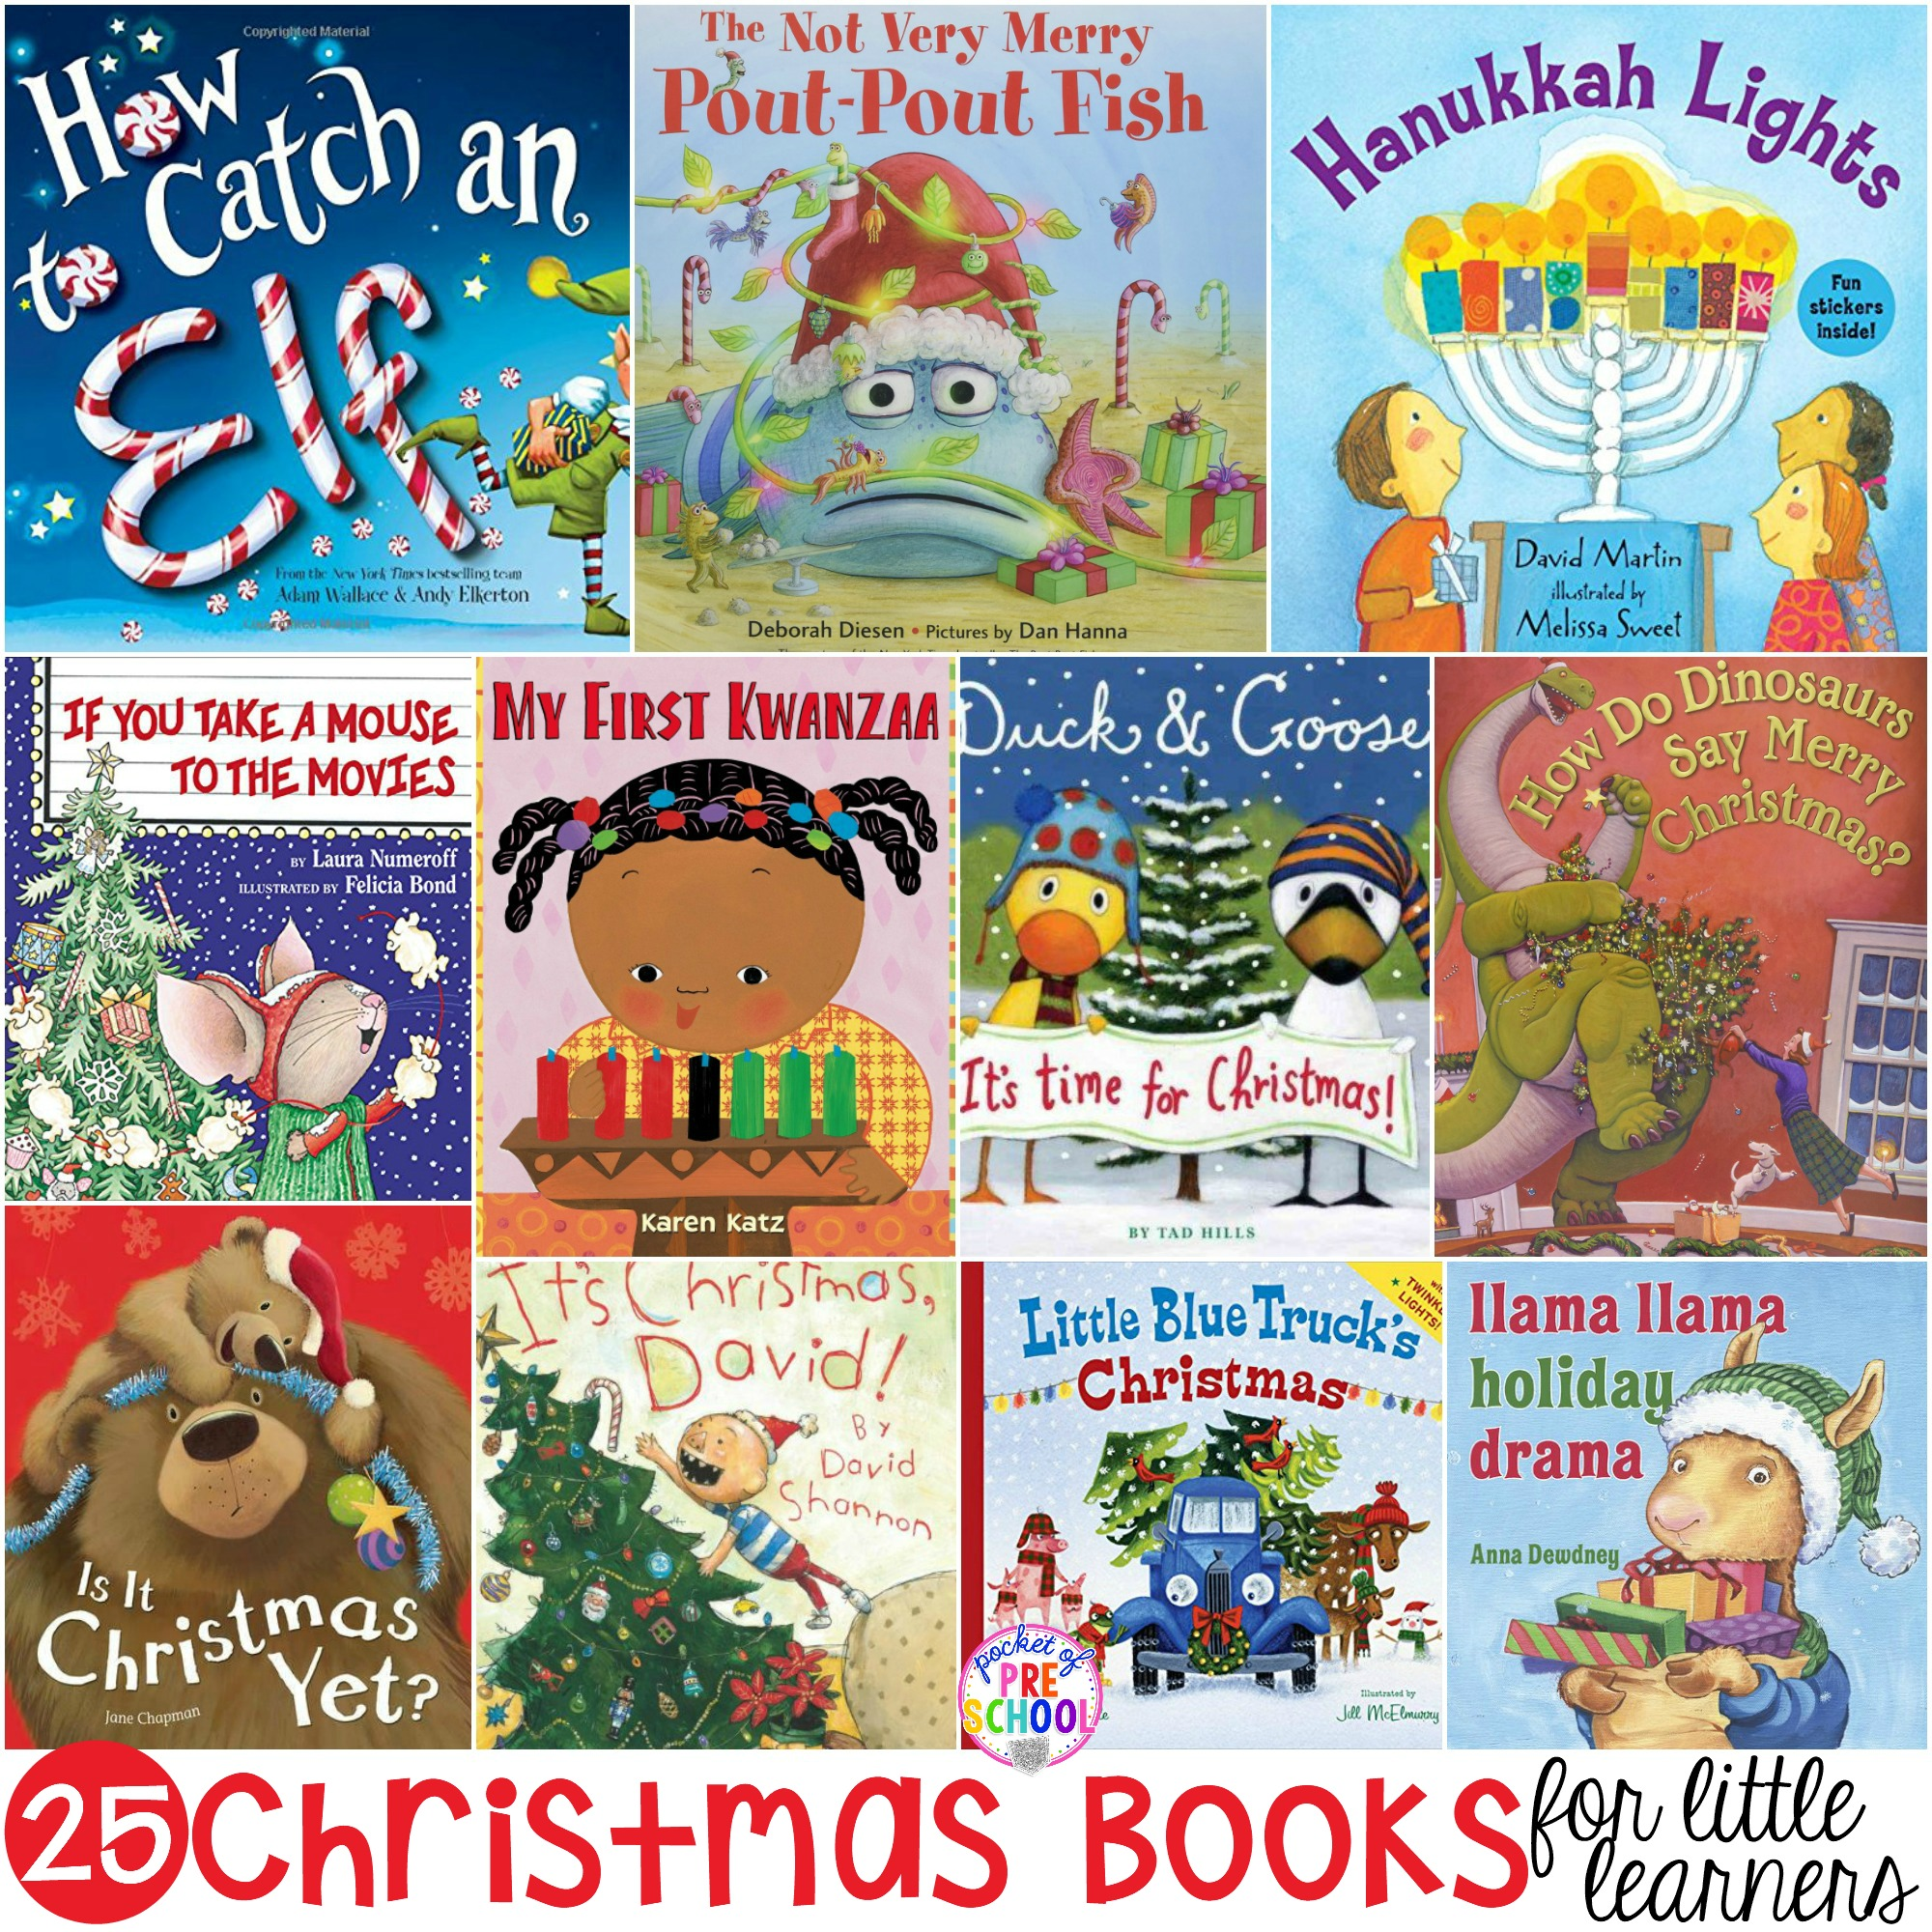 HUGE Christmas book list for little learners in your preschool, pre-k, and kindergarten classrooms or home.